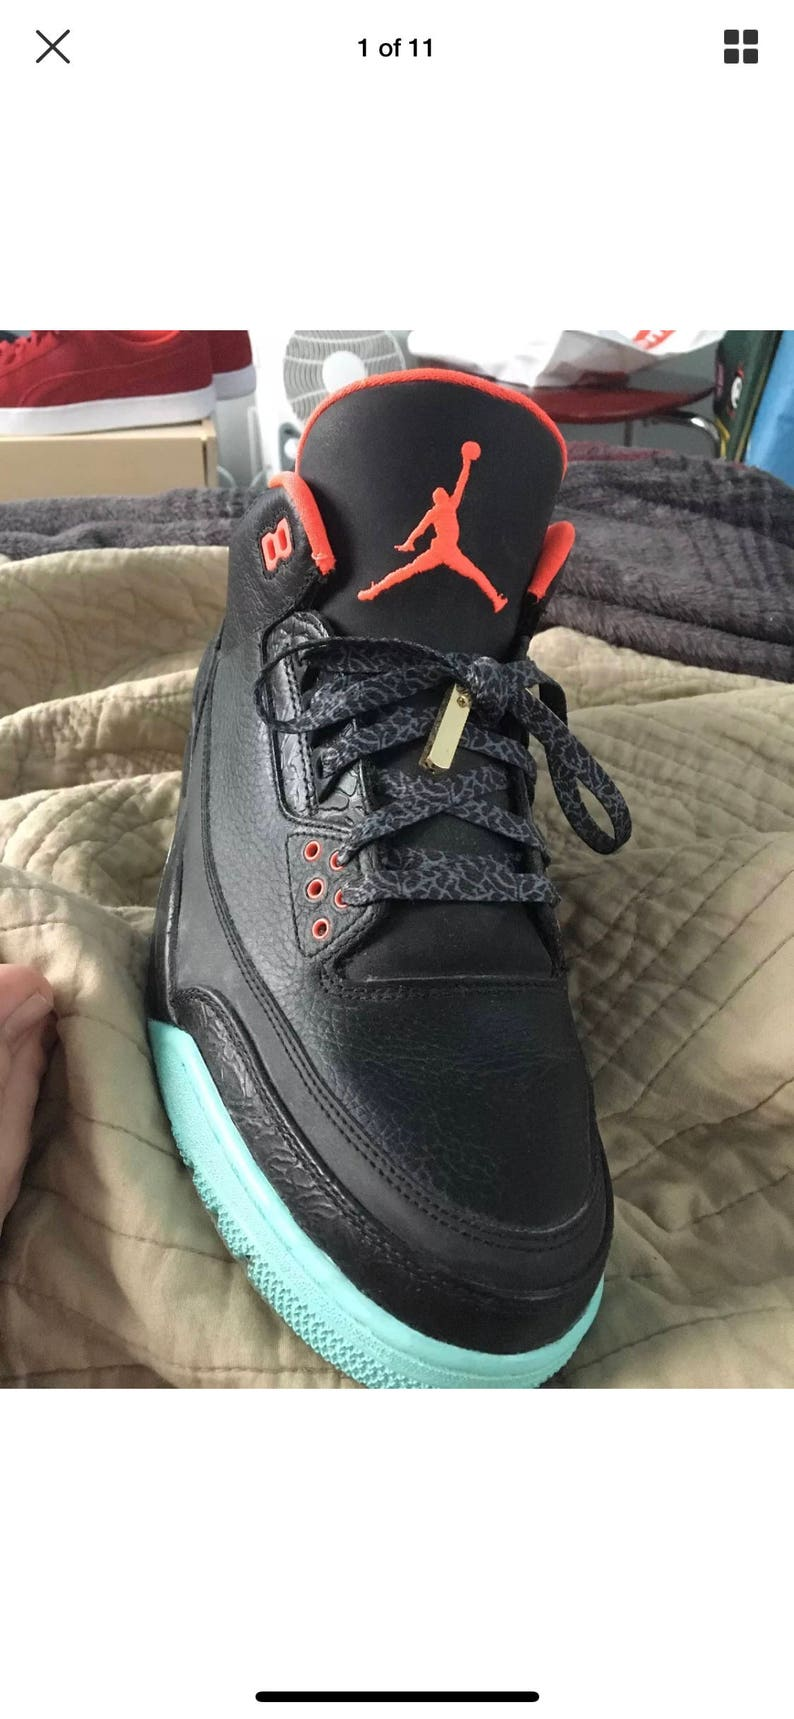 "low priced 02272 8f076 Jordan 3 ""yeezy solar red"" custom"